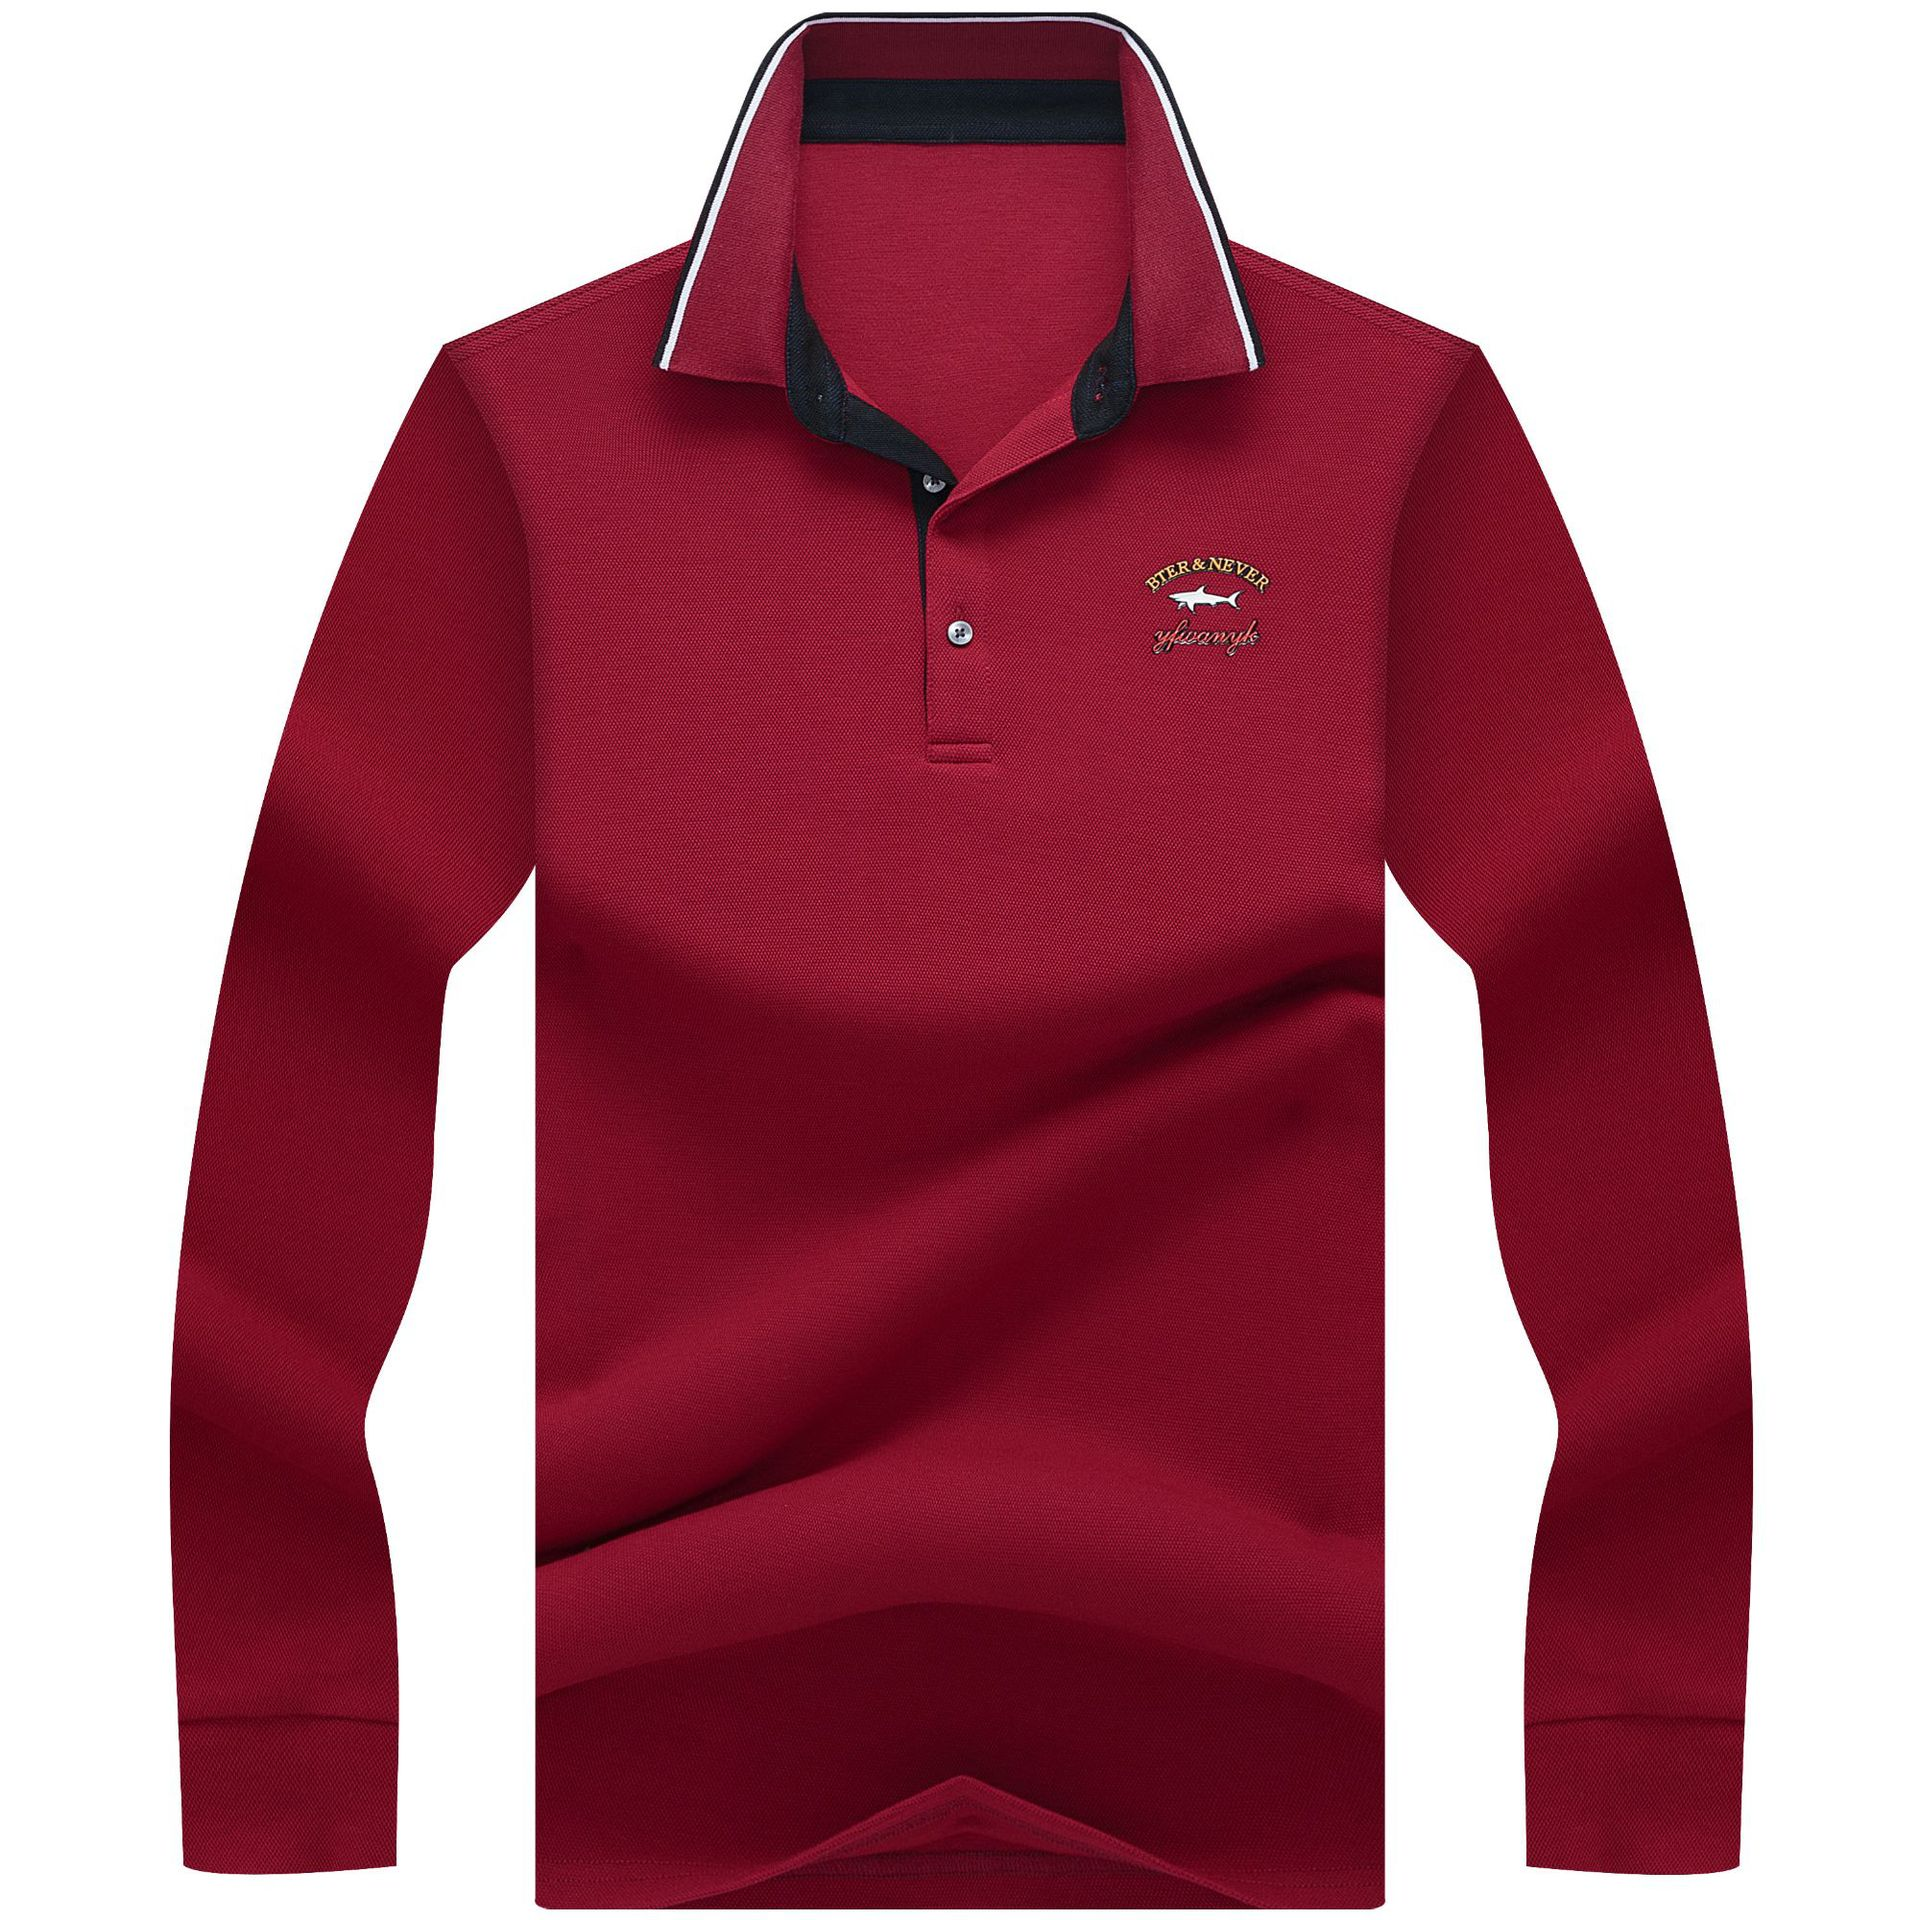 Designer Mens   Polo   Shirts Long Sleeve Autumn Fashion Embroidery Solid Top Cotton Male Casual Shirt Men   Polo   Tees M-3XL AF8841